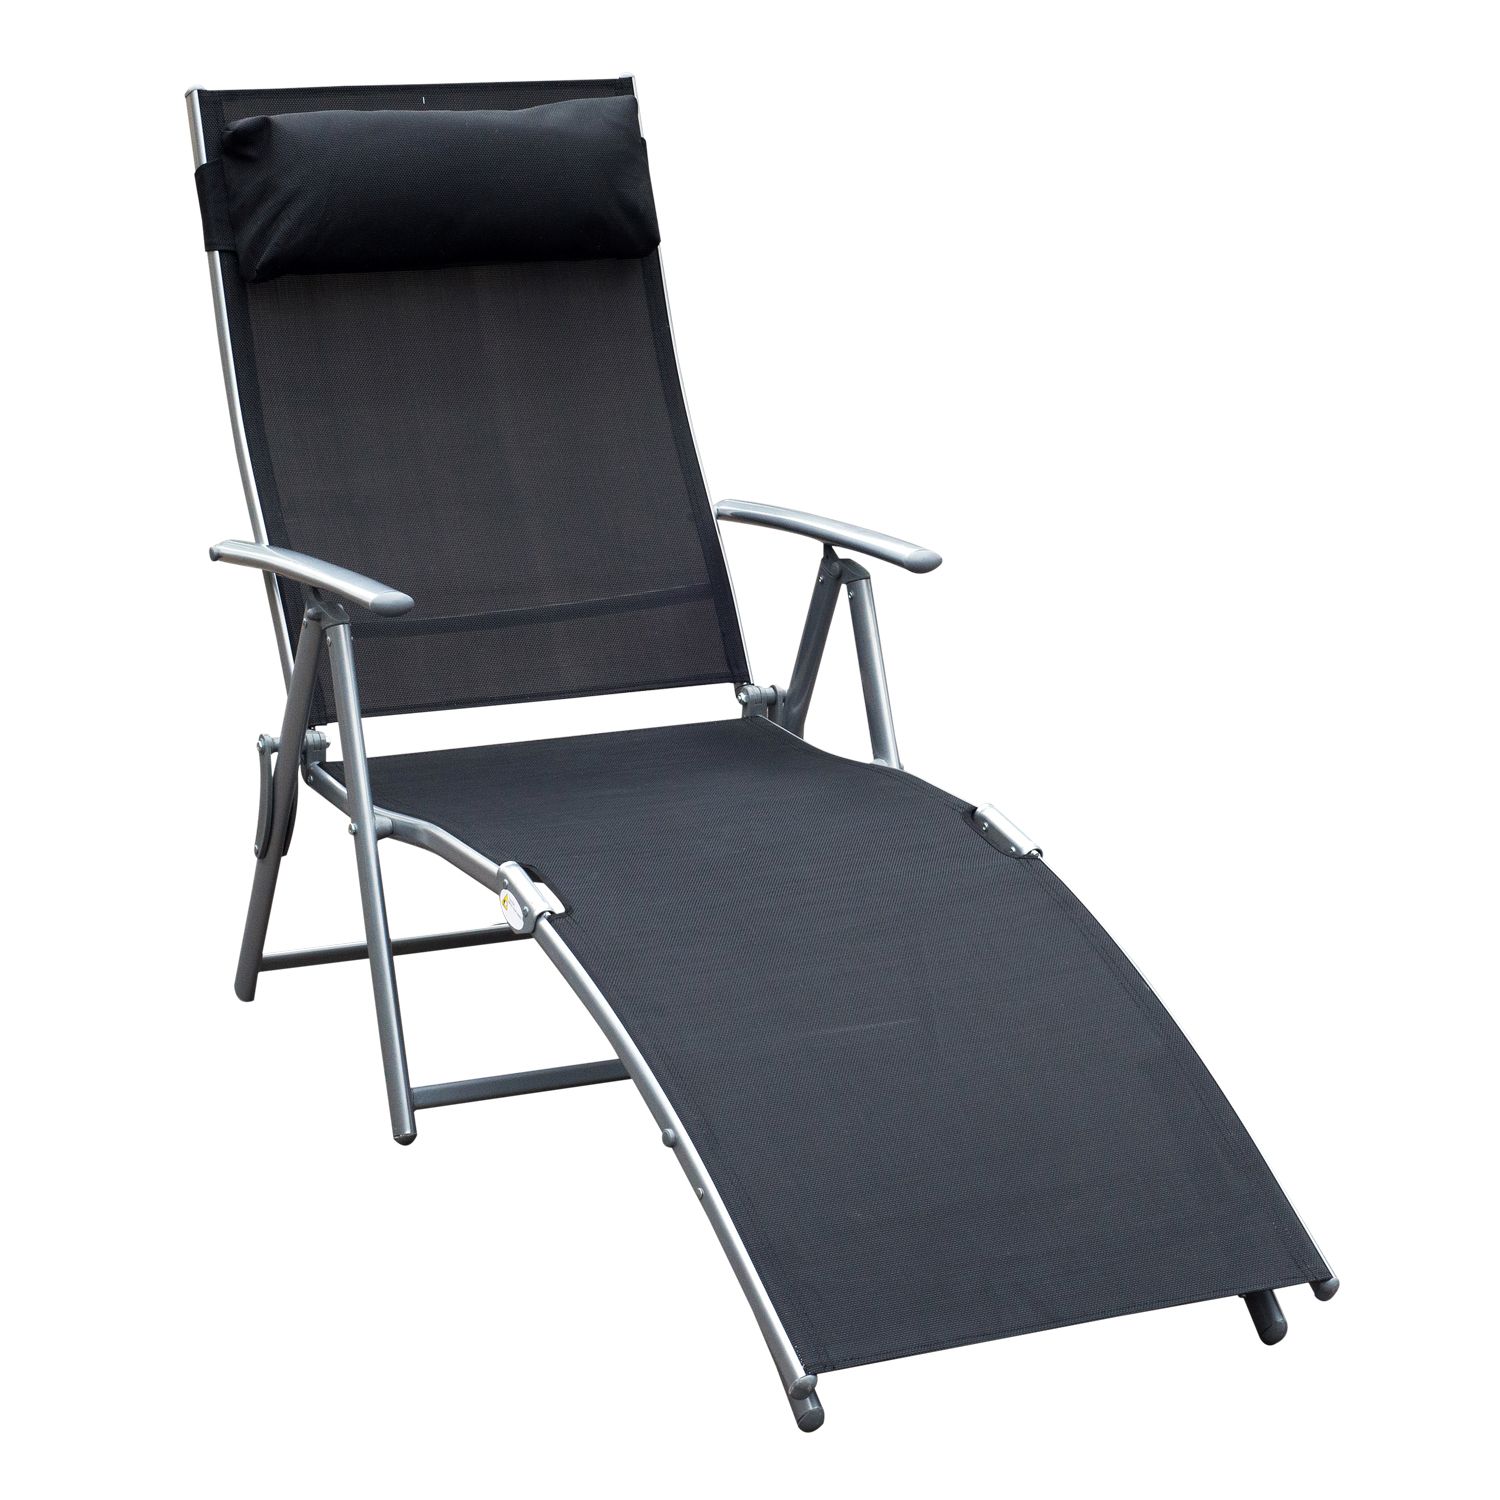 High Quality Chaise Lounge Chair Folding Pool Beach Yard Adjustable